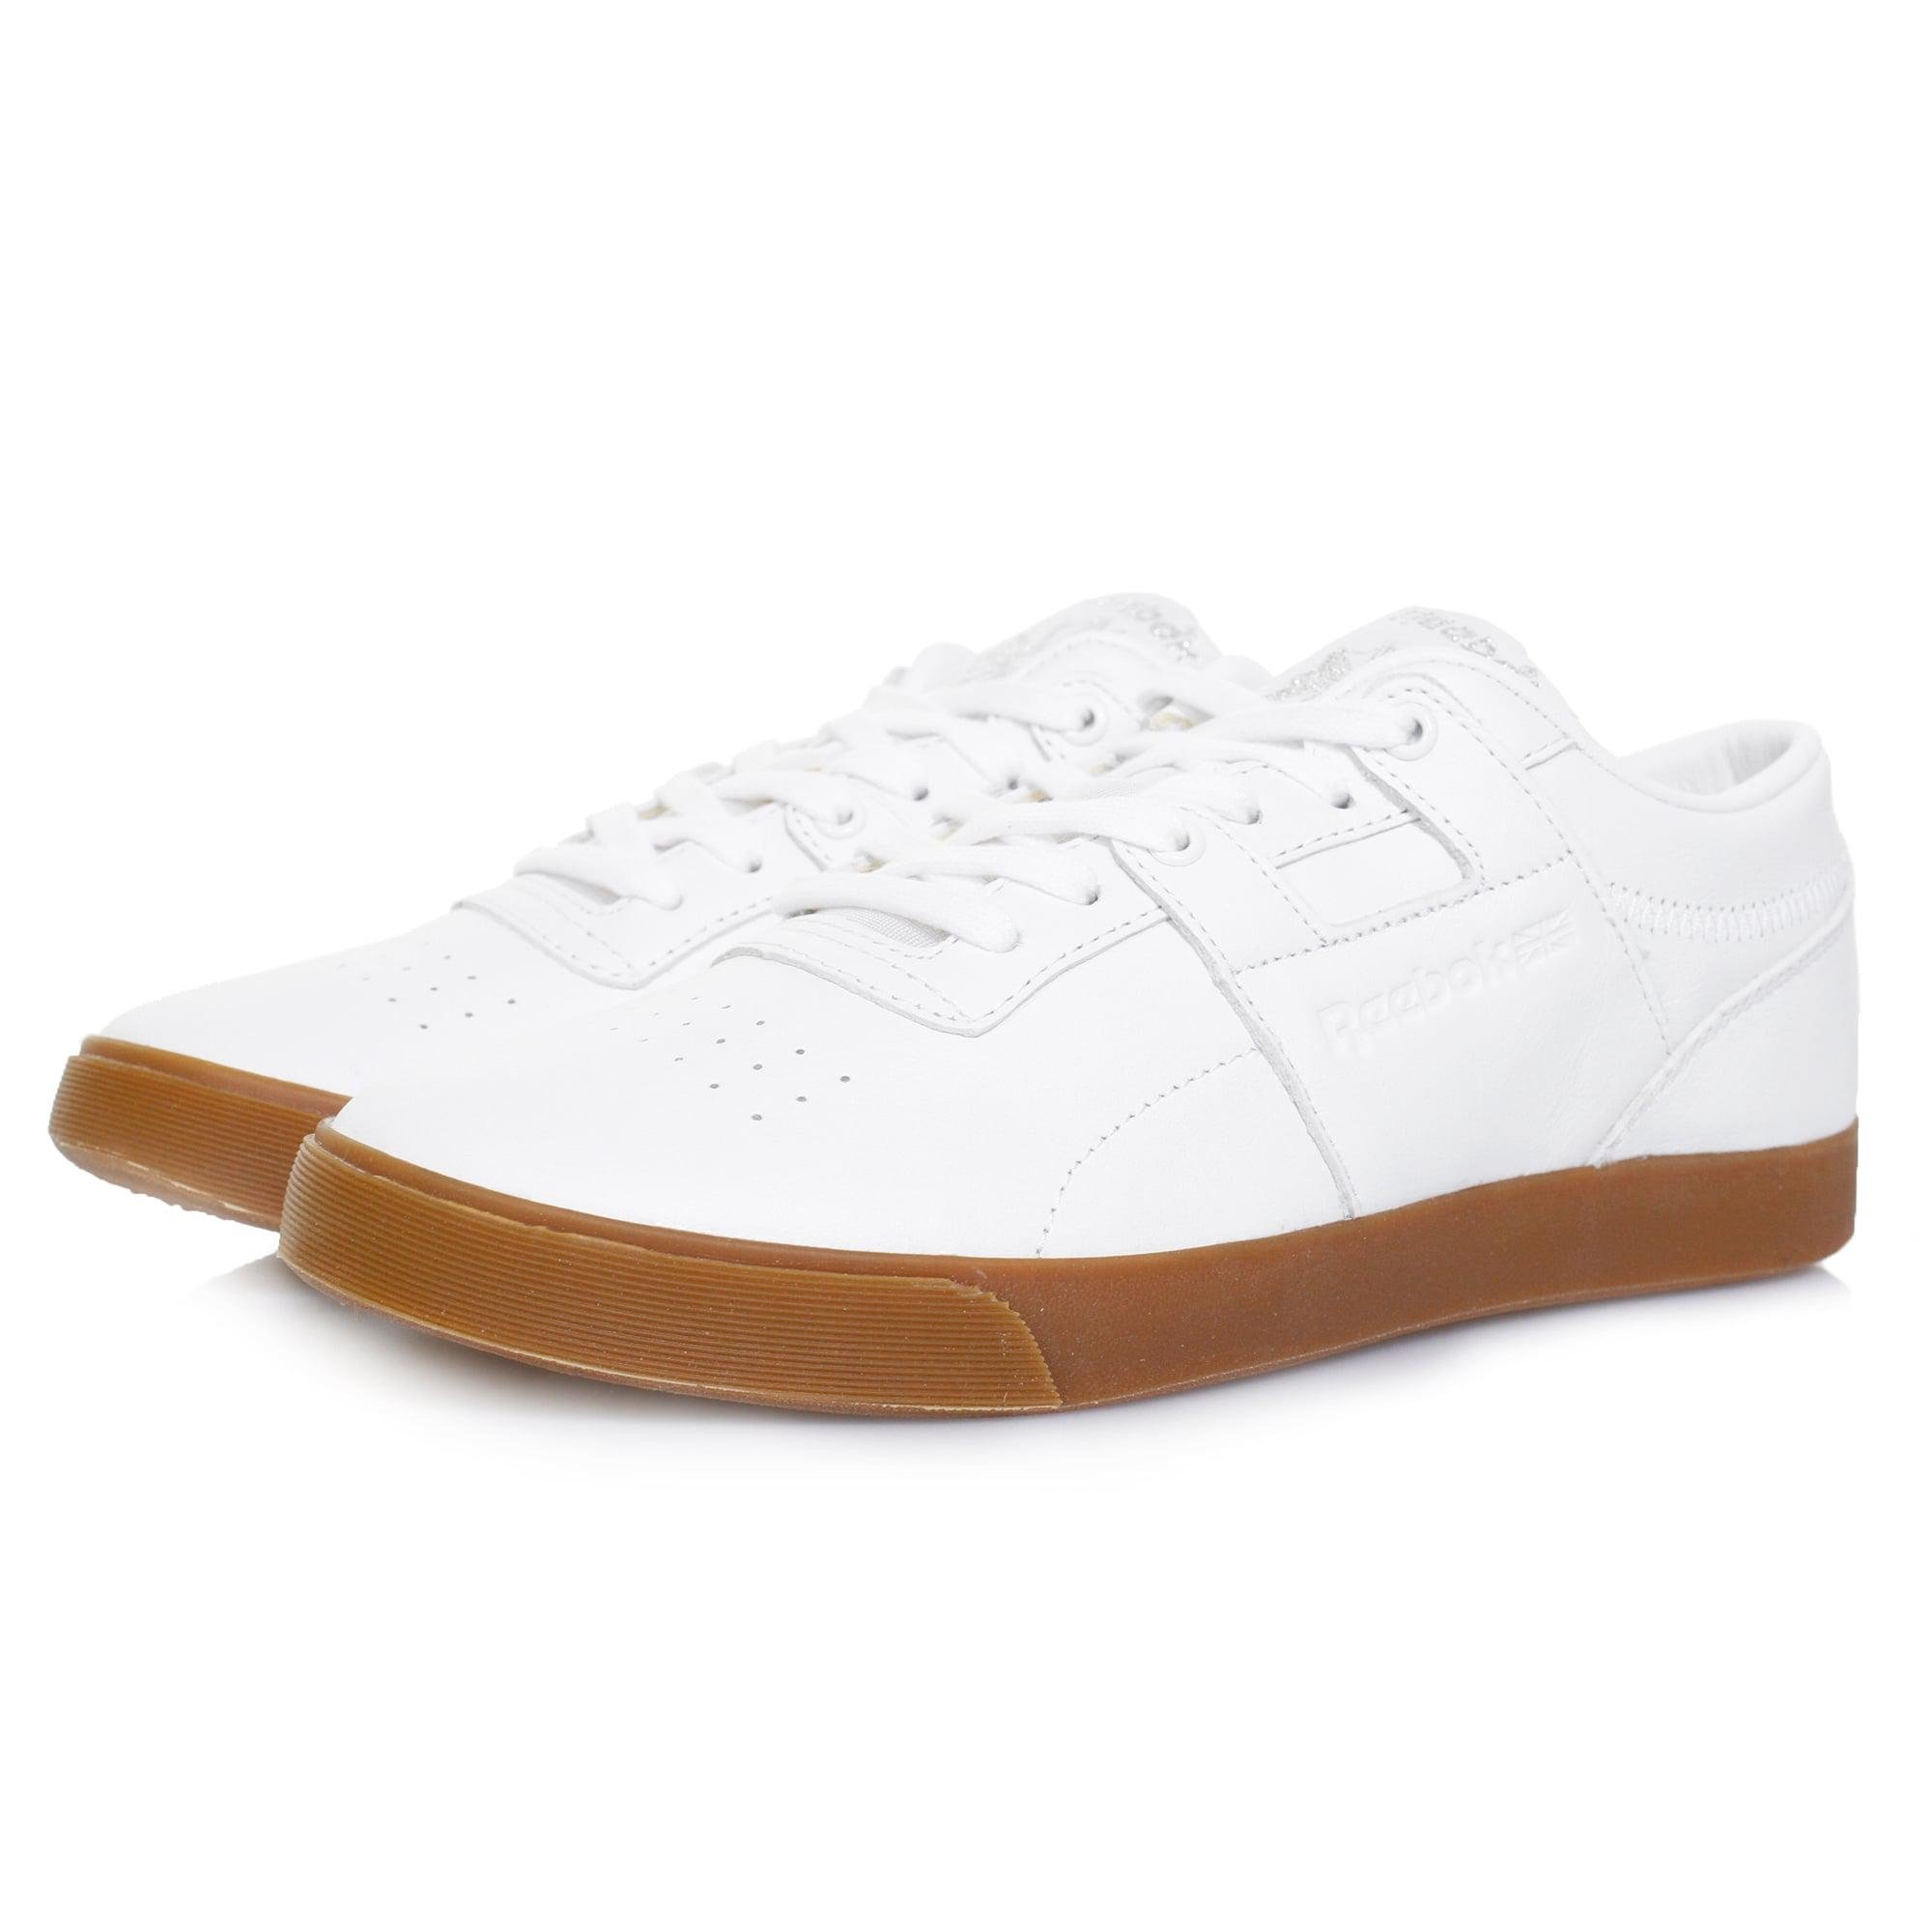 Lyst - Reebok Workout Low Gum White Shoe Bd4764 in White 953ee5f89